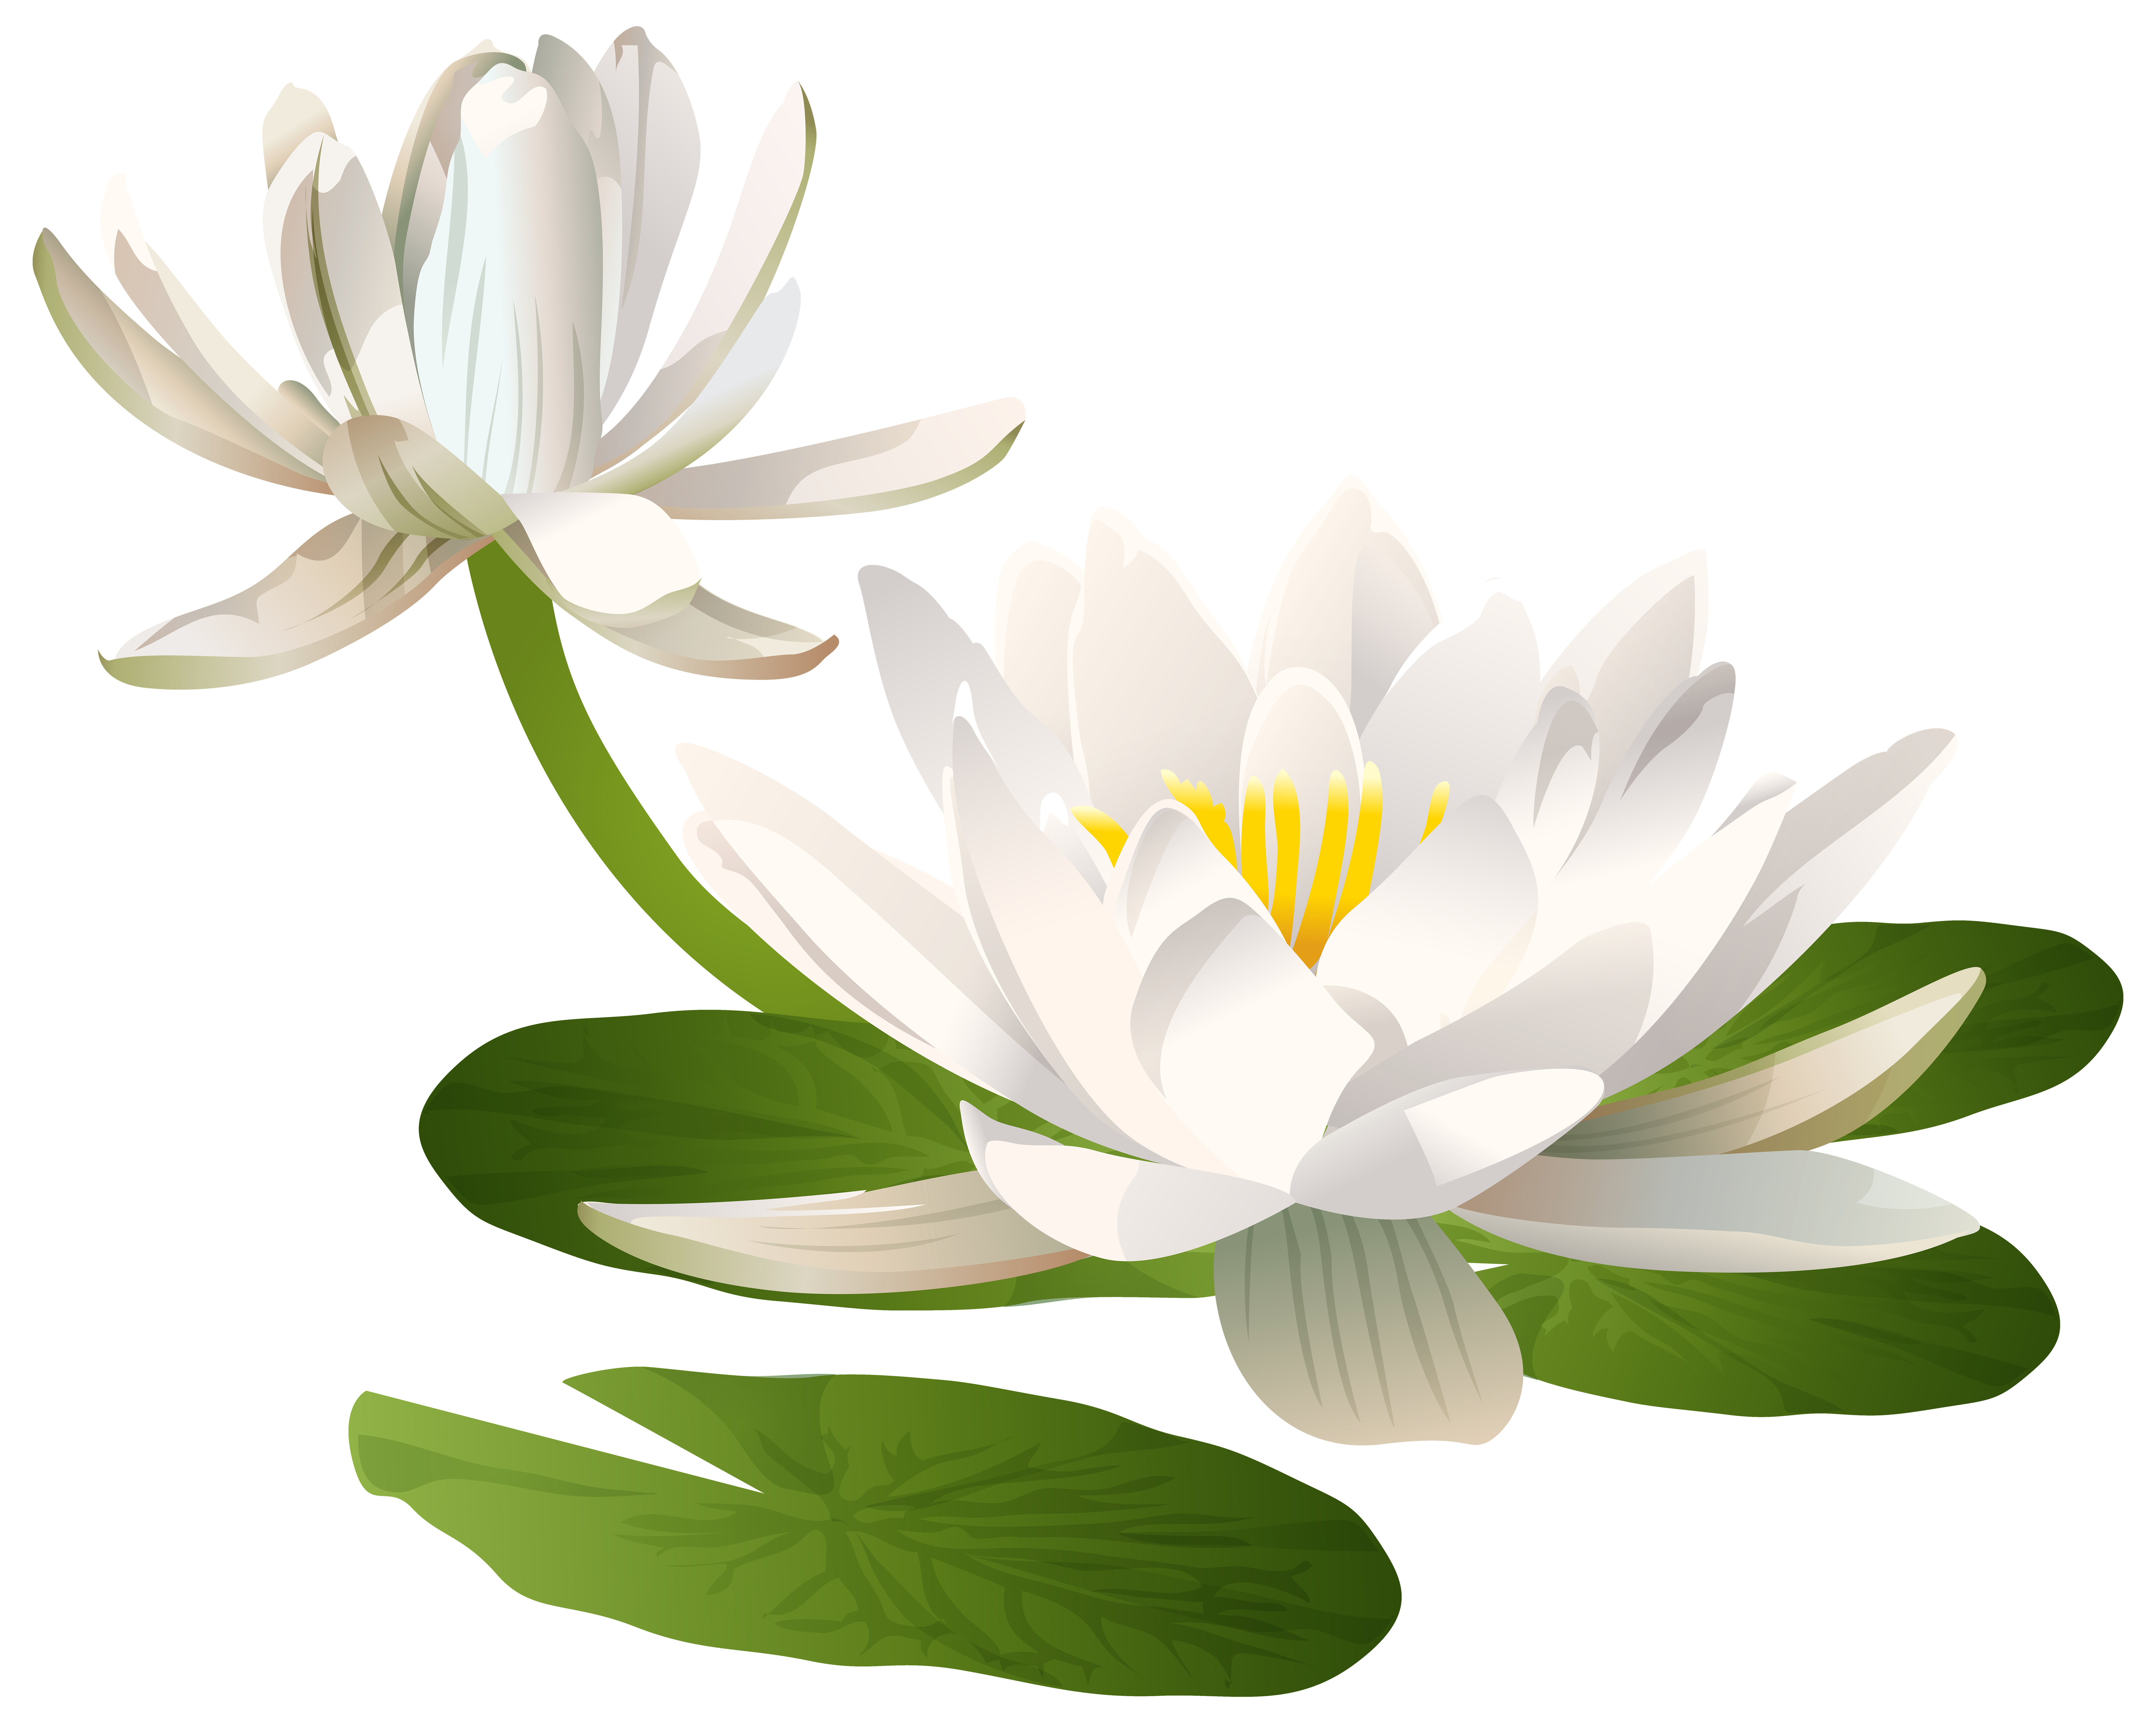 Water lily clipart #3